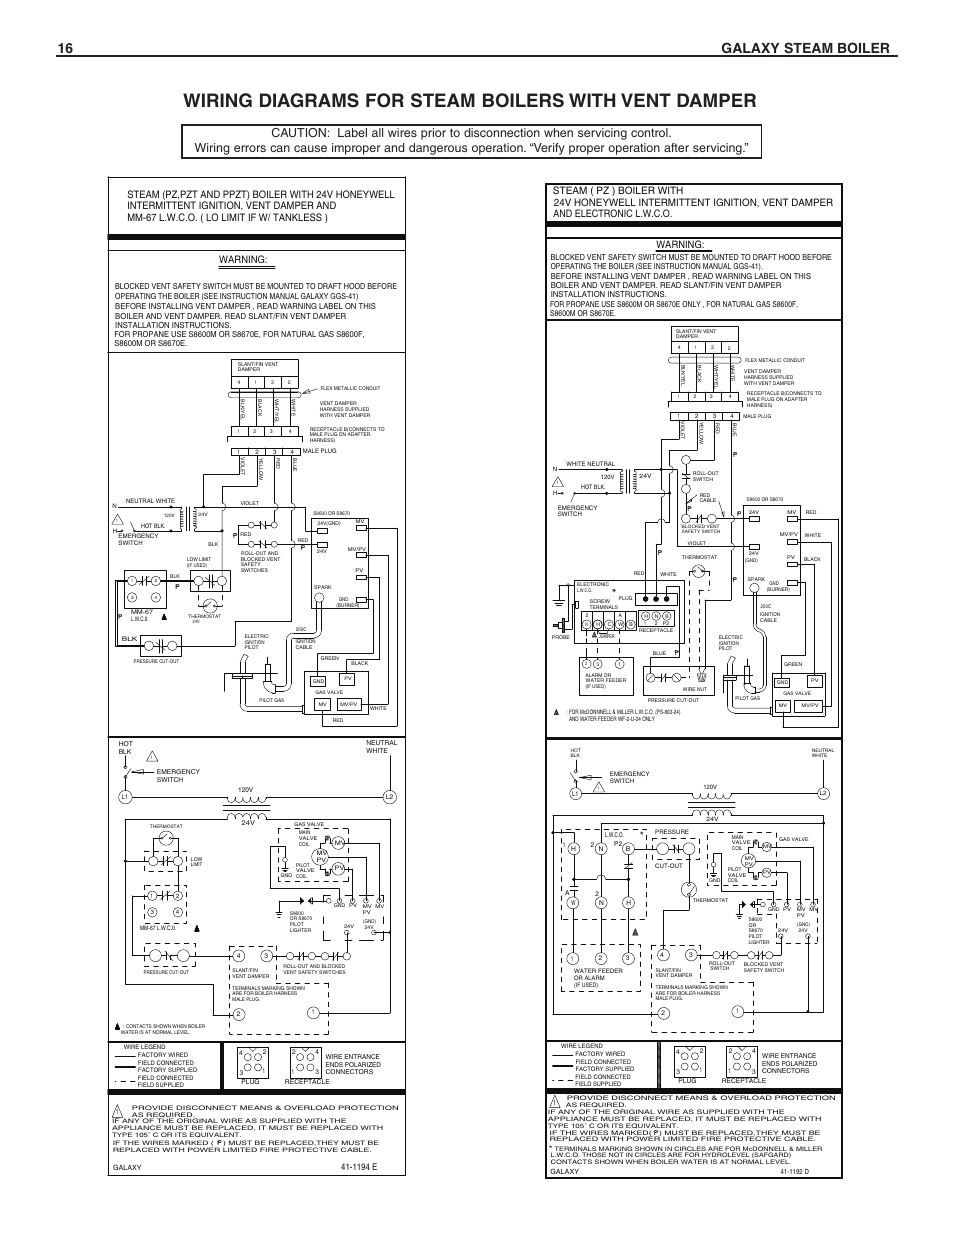 Wiring diagrams for steam boilers with vent damper, 16 galaxy steam boiler,  Warning | Slant/Fin GXHA-200 User Manual | Page 16 / 20Manuals Directory